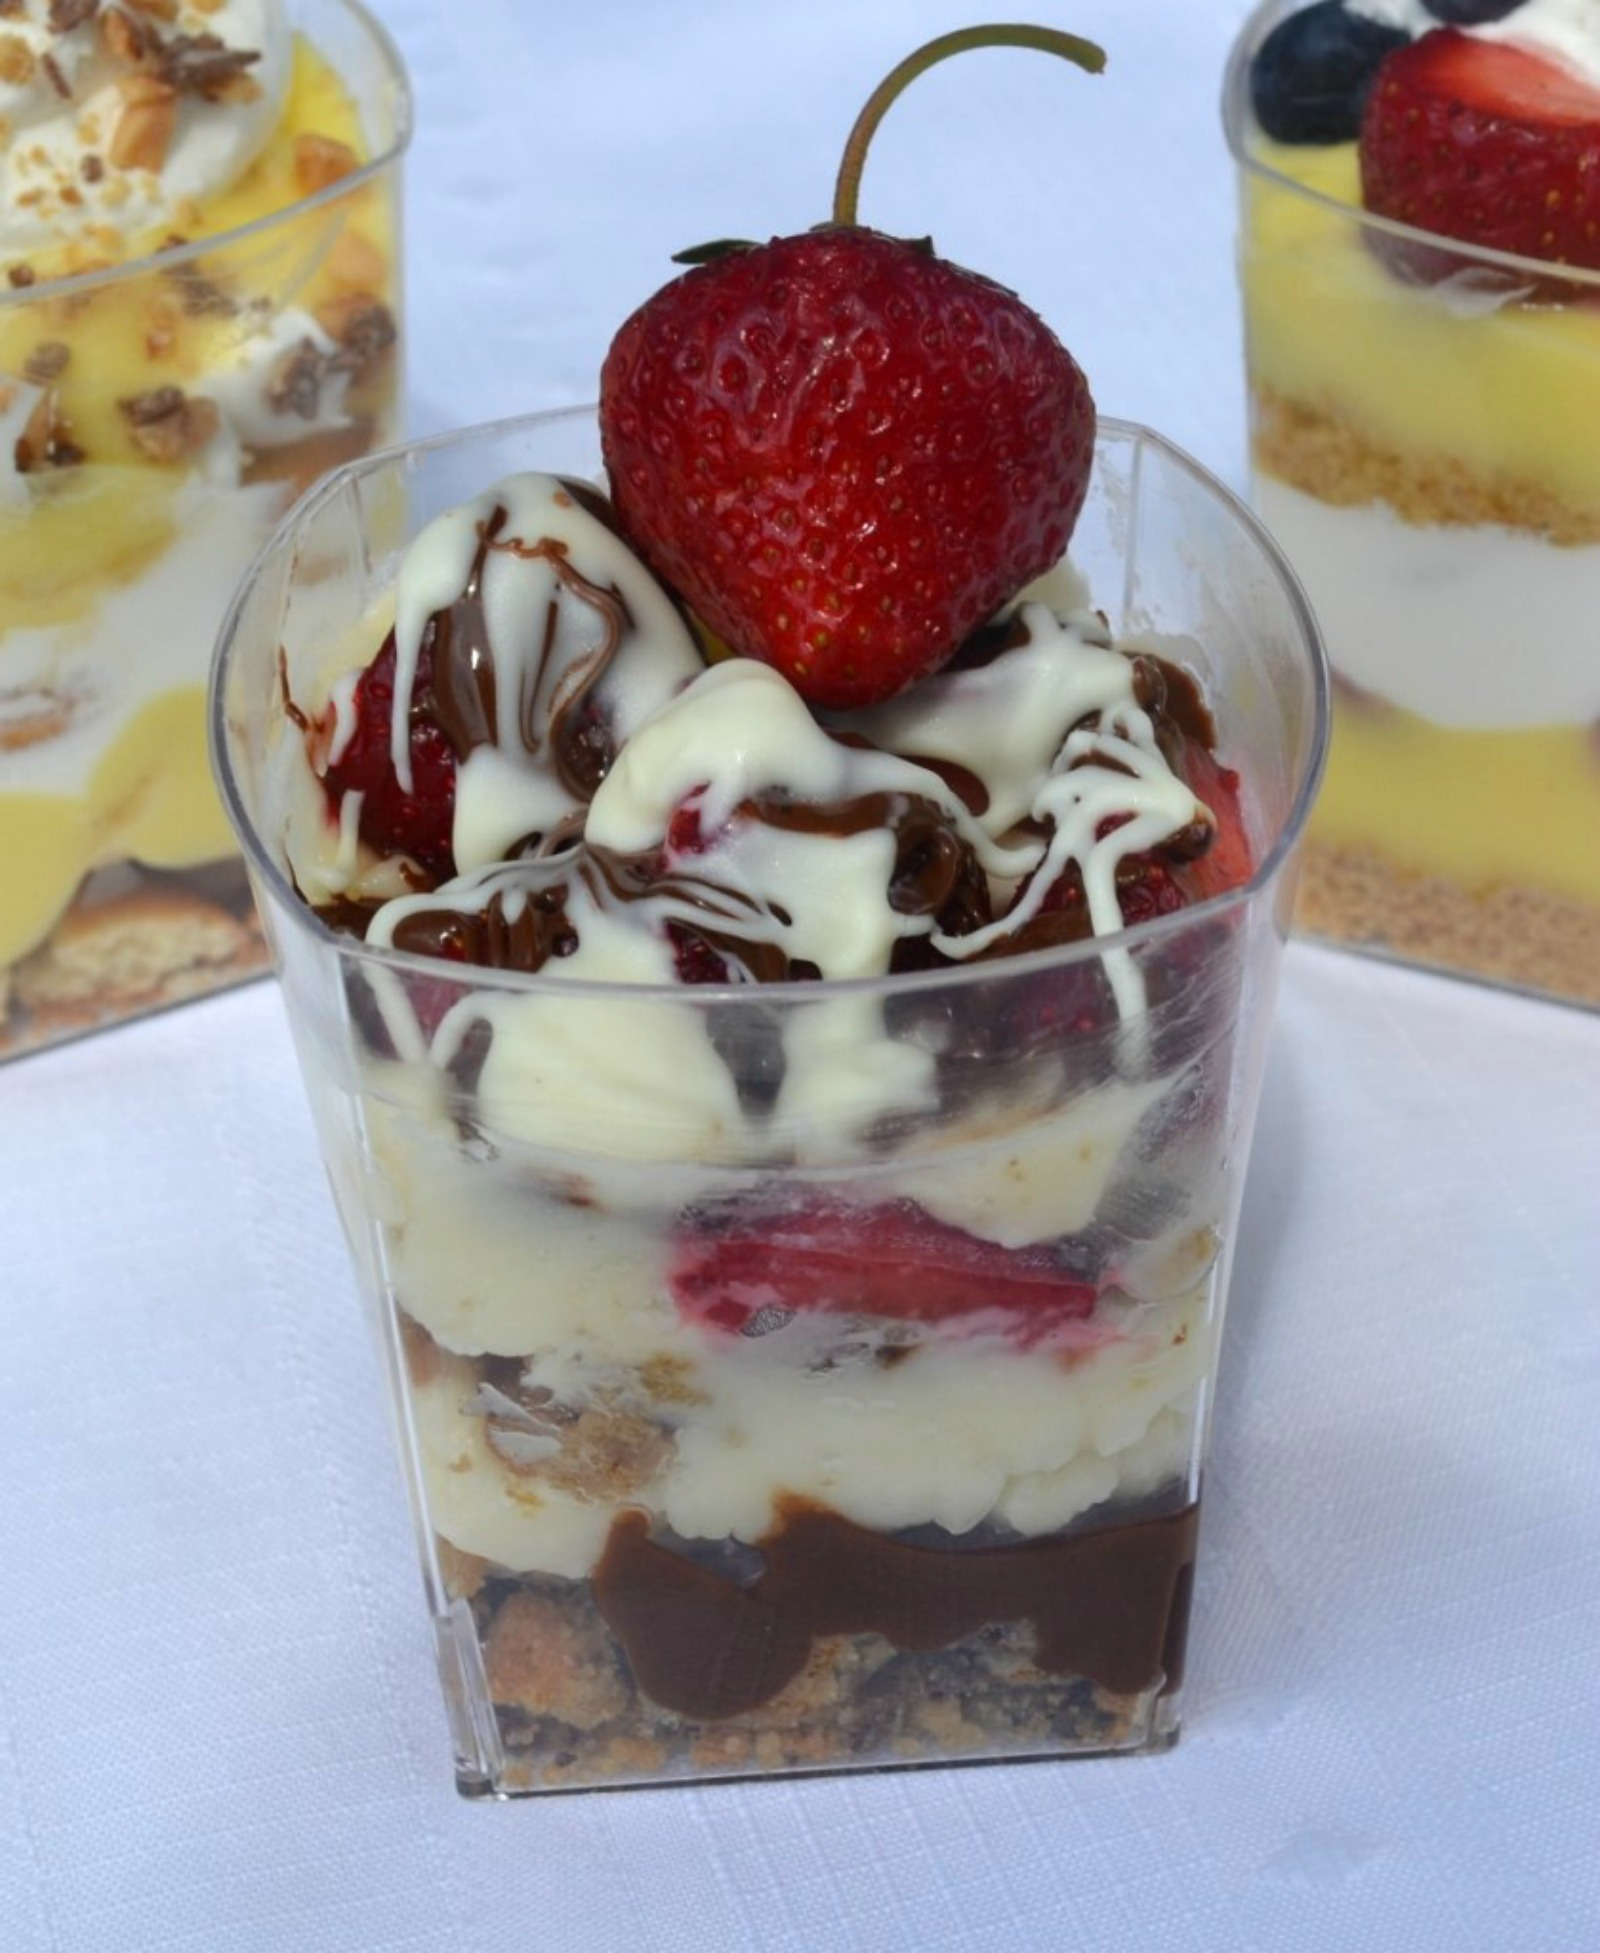 Strawberry-Mascarpone-Hazelnut Parfait (inspired by my 2014 Pillsbury ...